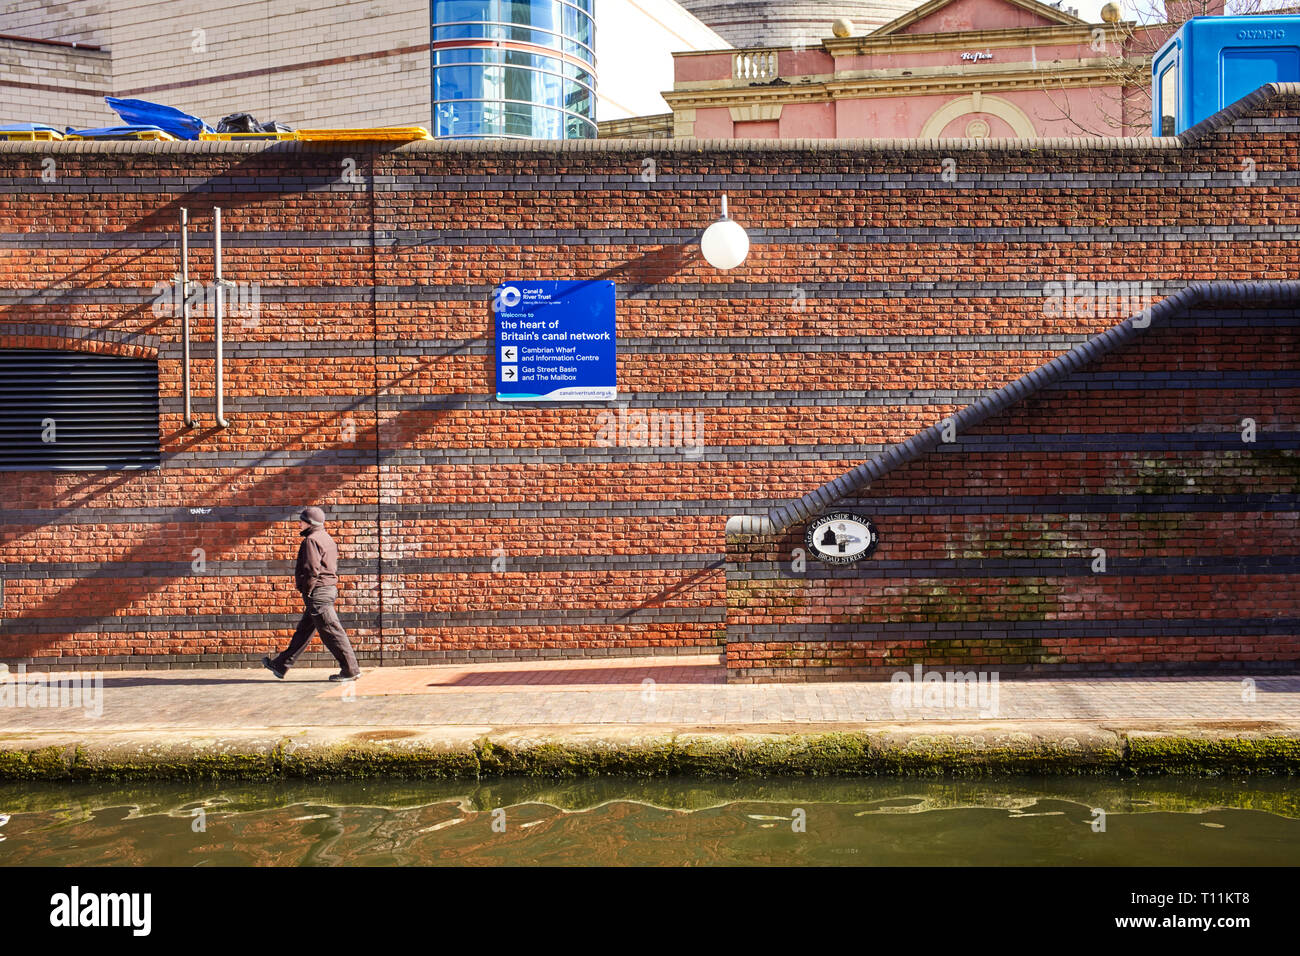 Canalside walk at Broad Street on the BCN canal network in the heart of Birmingham - Stock Image